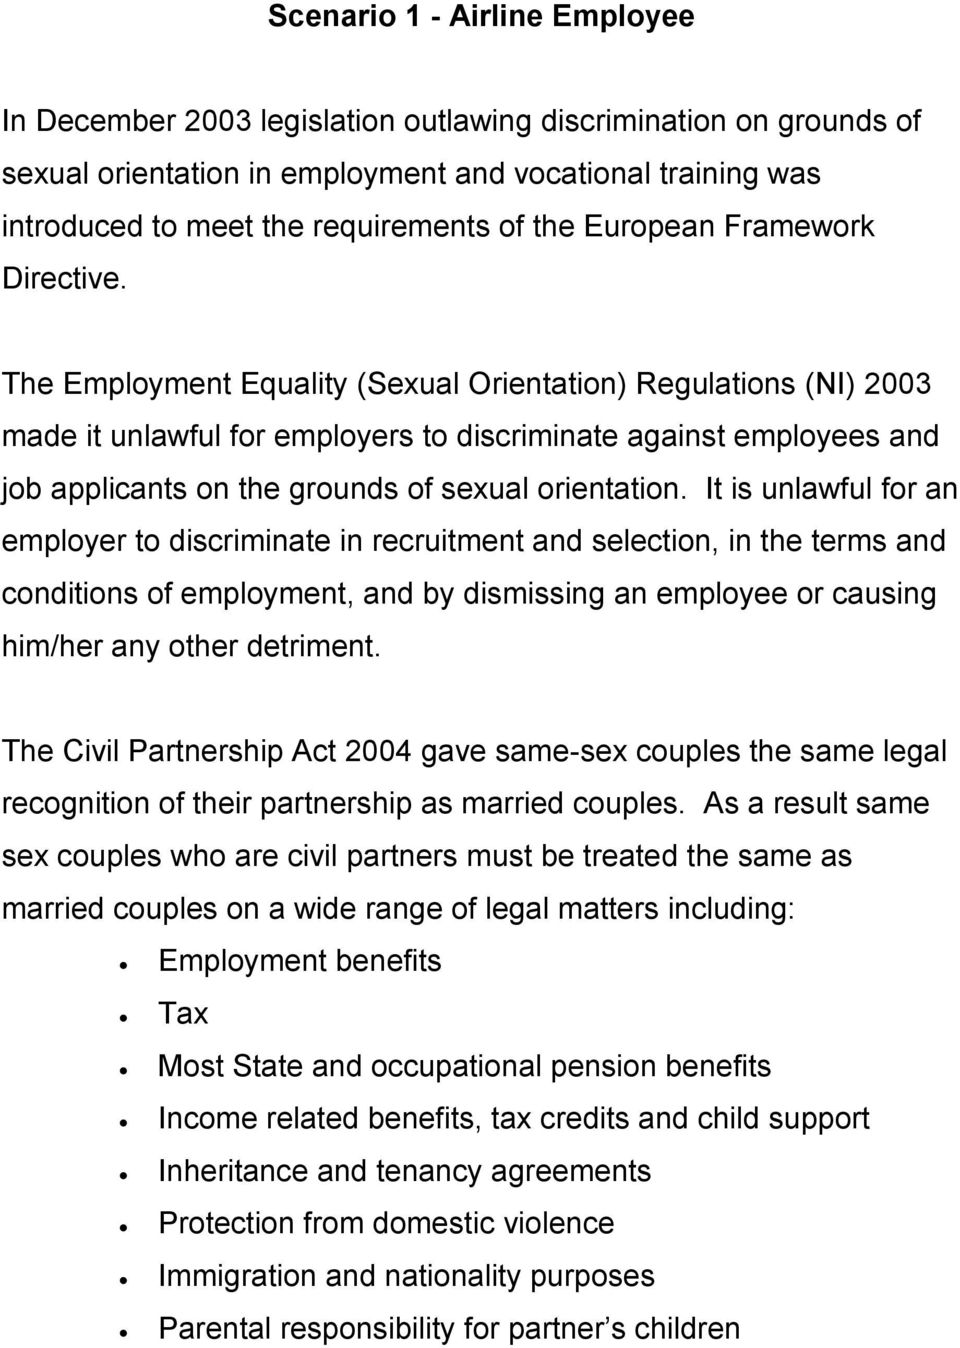 The Employment Equality (Sexual Orientation) Regulations (NI) 2003 made it unlawful for employers to discriminate against employees and job applicants on the grounds of sexual orientation.